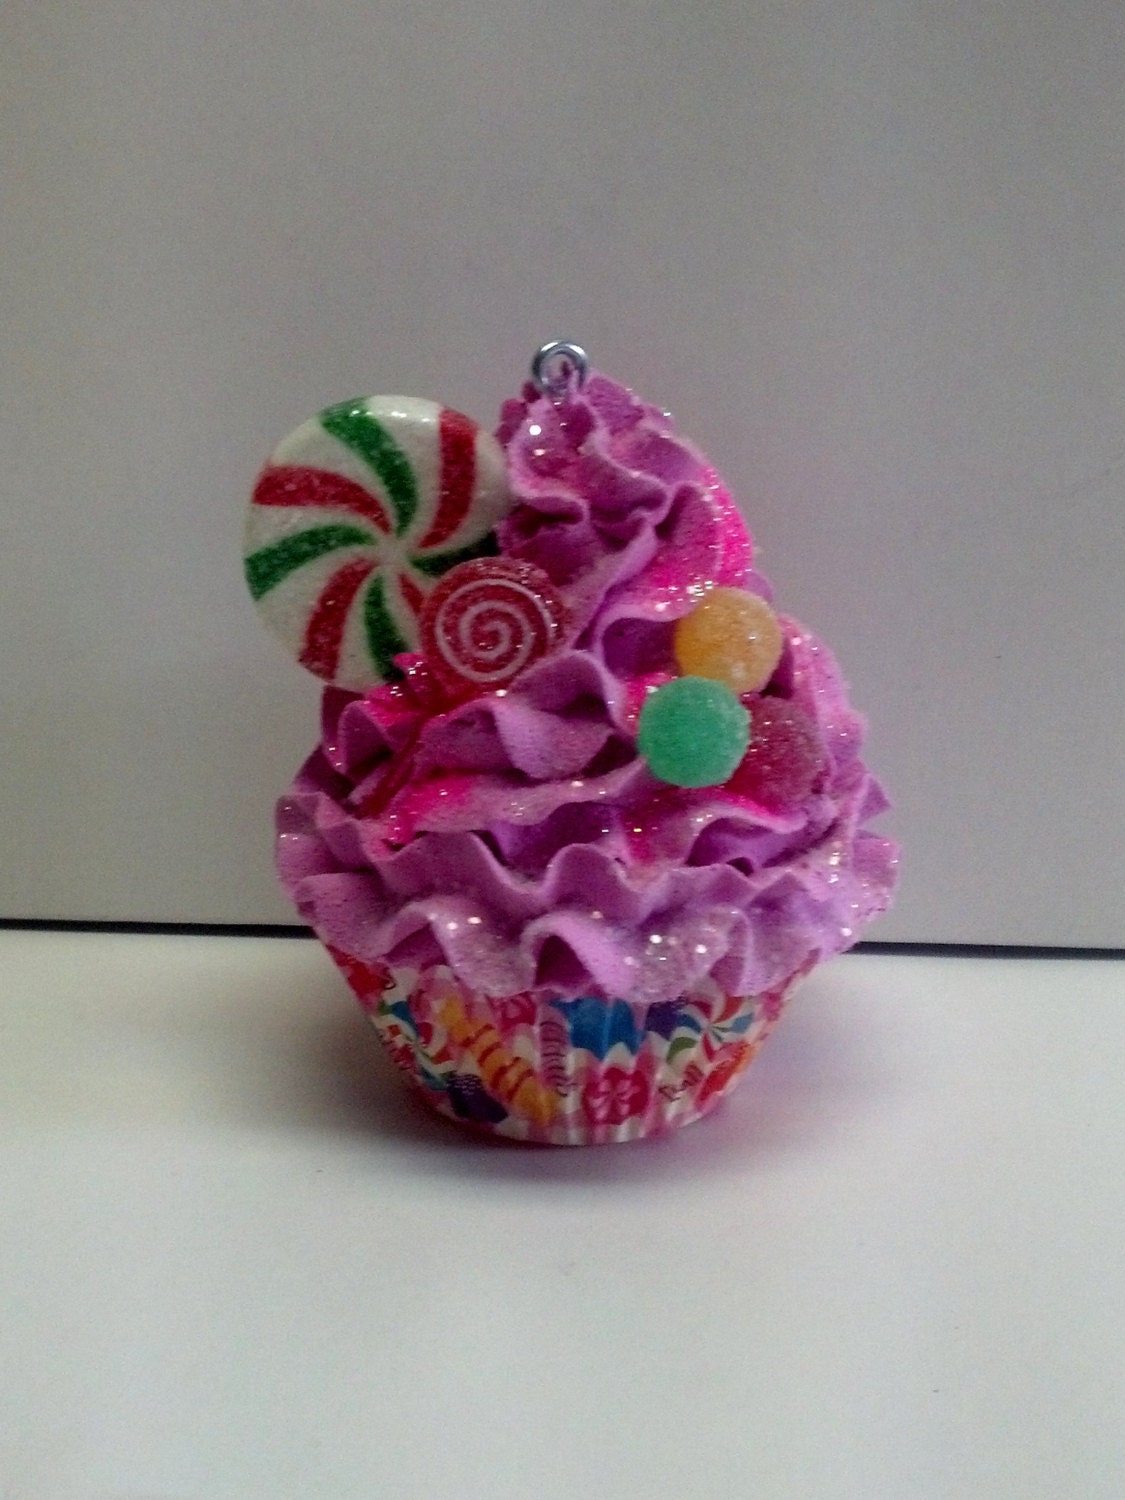 Candy Fake Cupcake Christmas Tree Ornament with Sugar Plum Frosting for Holiday Decorations, Shop Displays, Home Accents, Candy Party